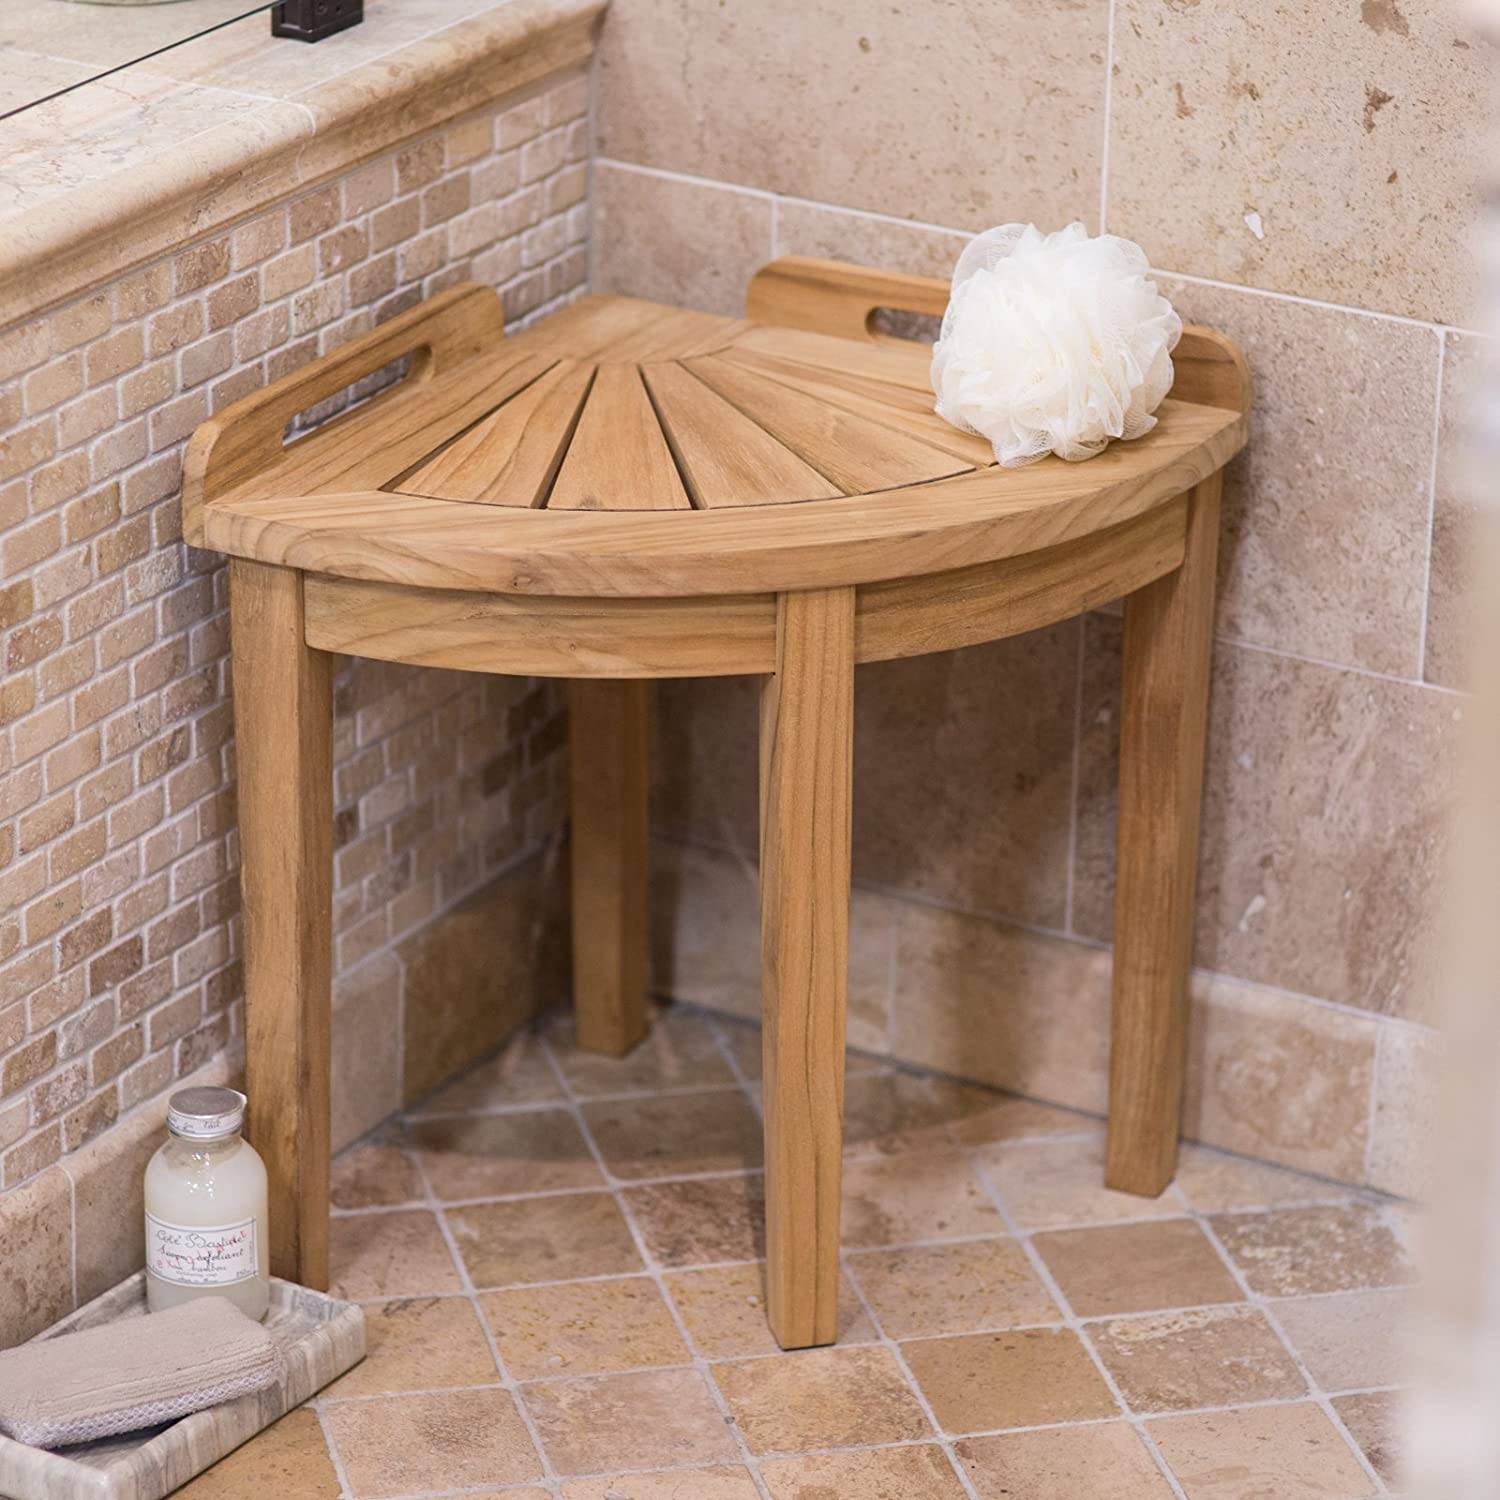 Amazon.com: Belham Living Teak Corner Shower Stool: Home & Kitchen